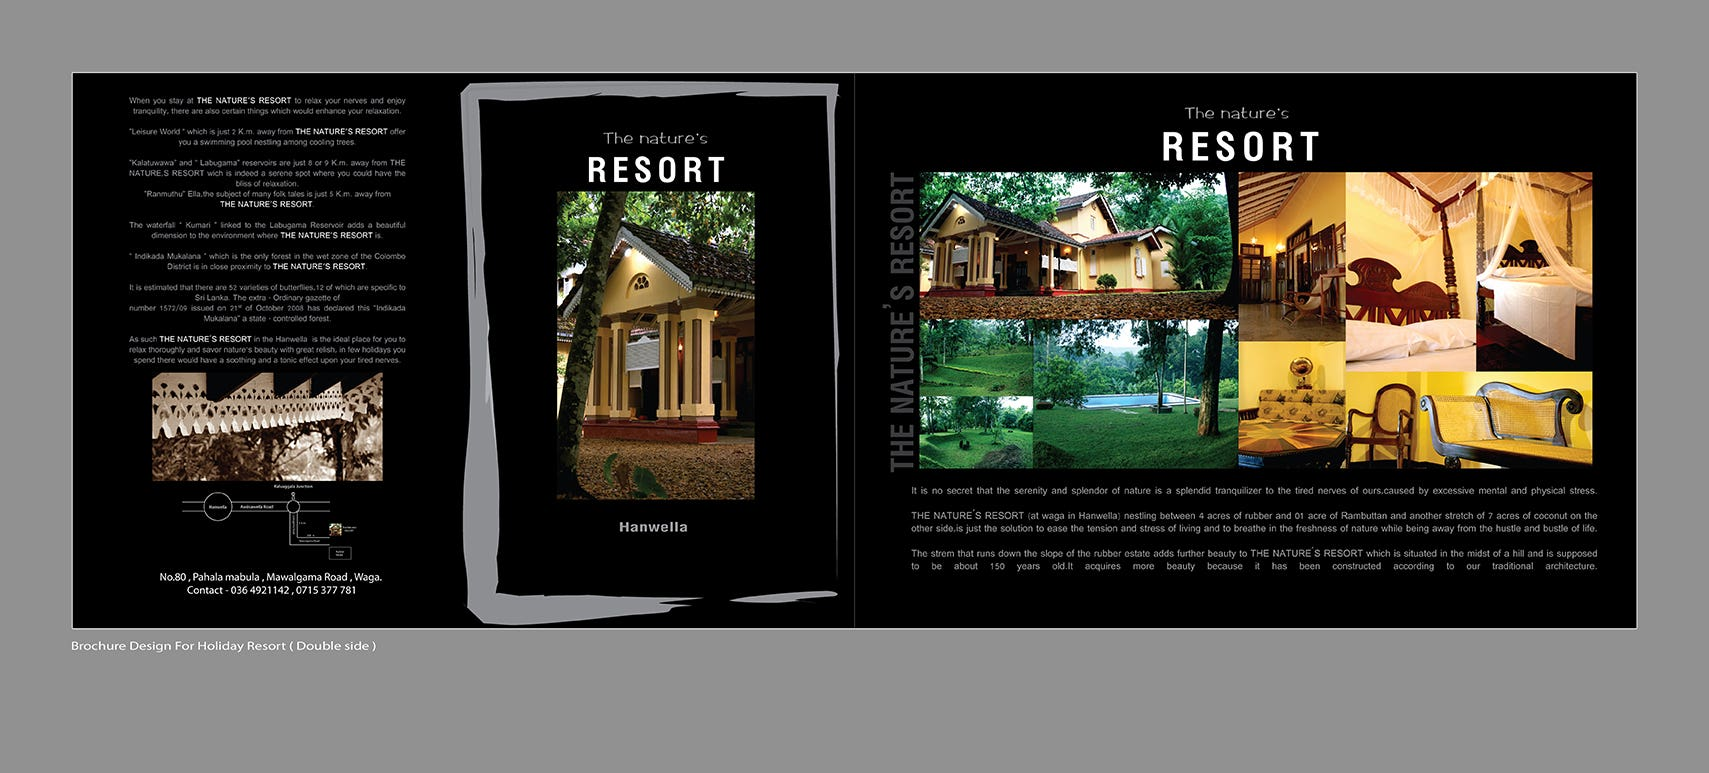 brochure design for holiday bungalows